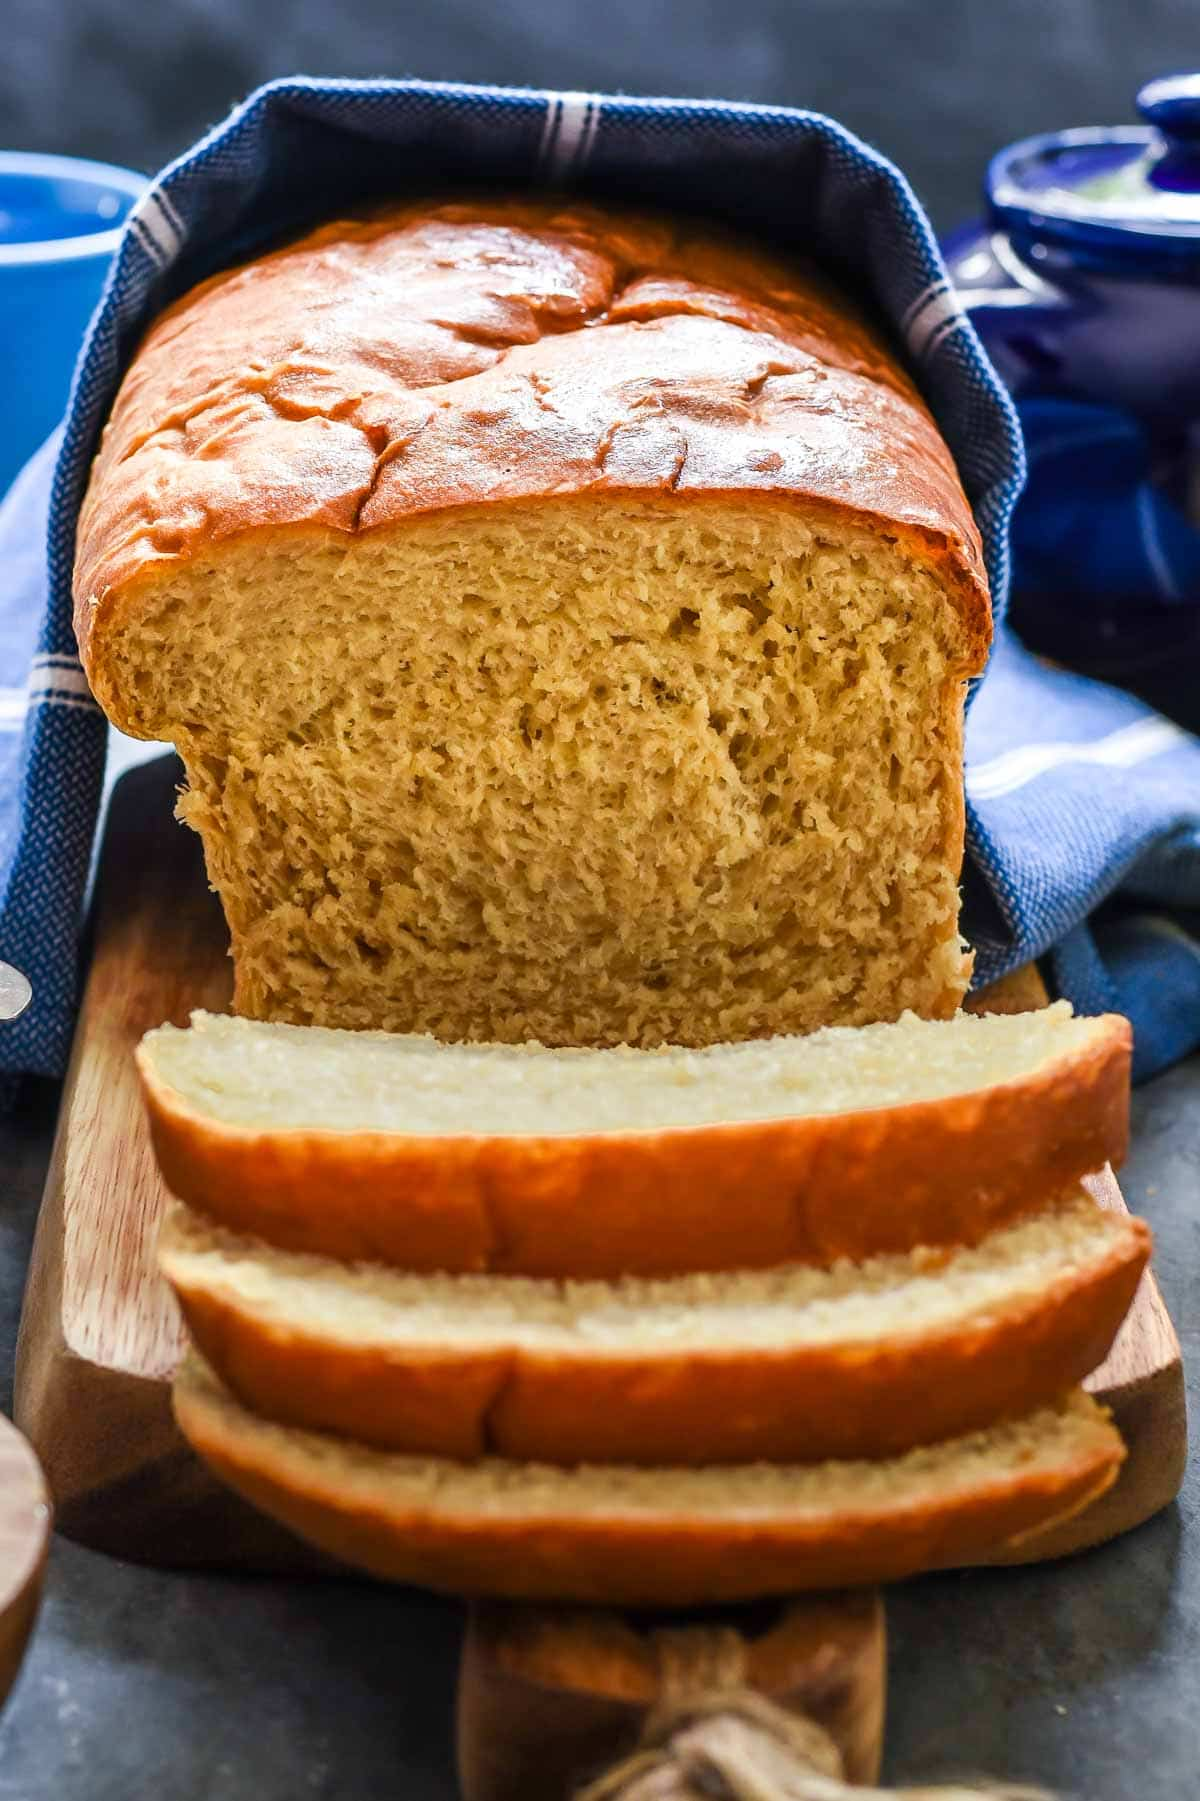 This Amish White Bread recipe is a keeper! It's super easy and perfect for making sandwiches, grilled cheese, or dipping in soup!